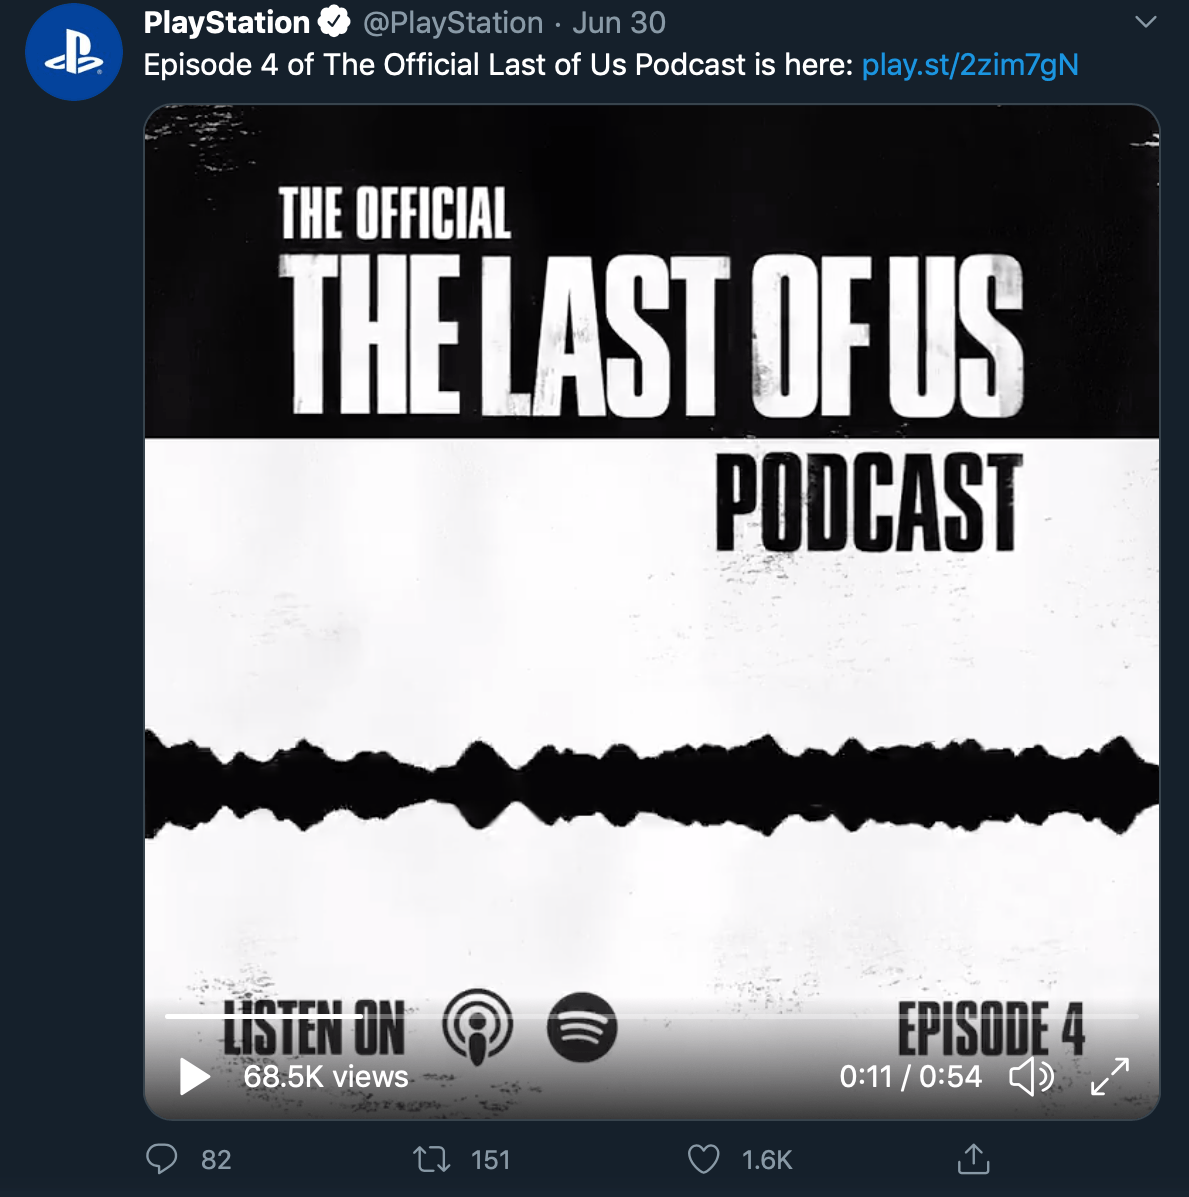 Audio podcast teaser by @PlayStation